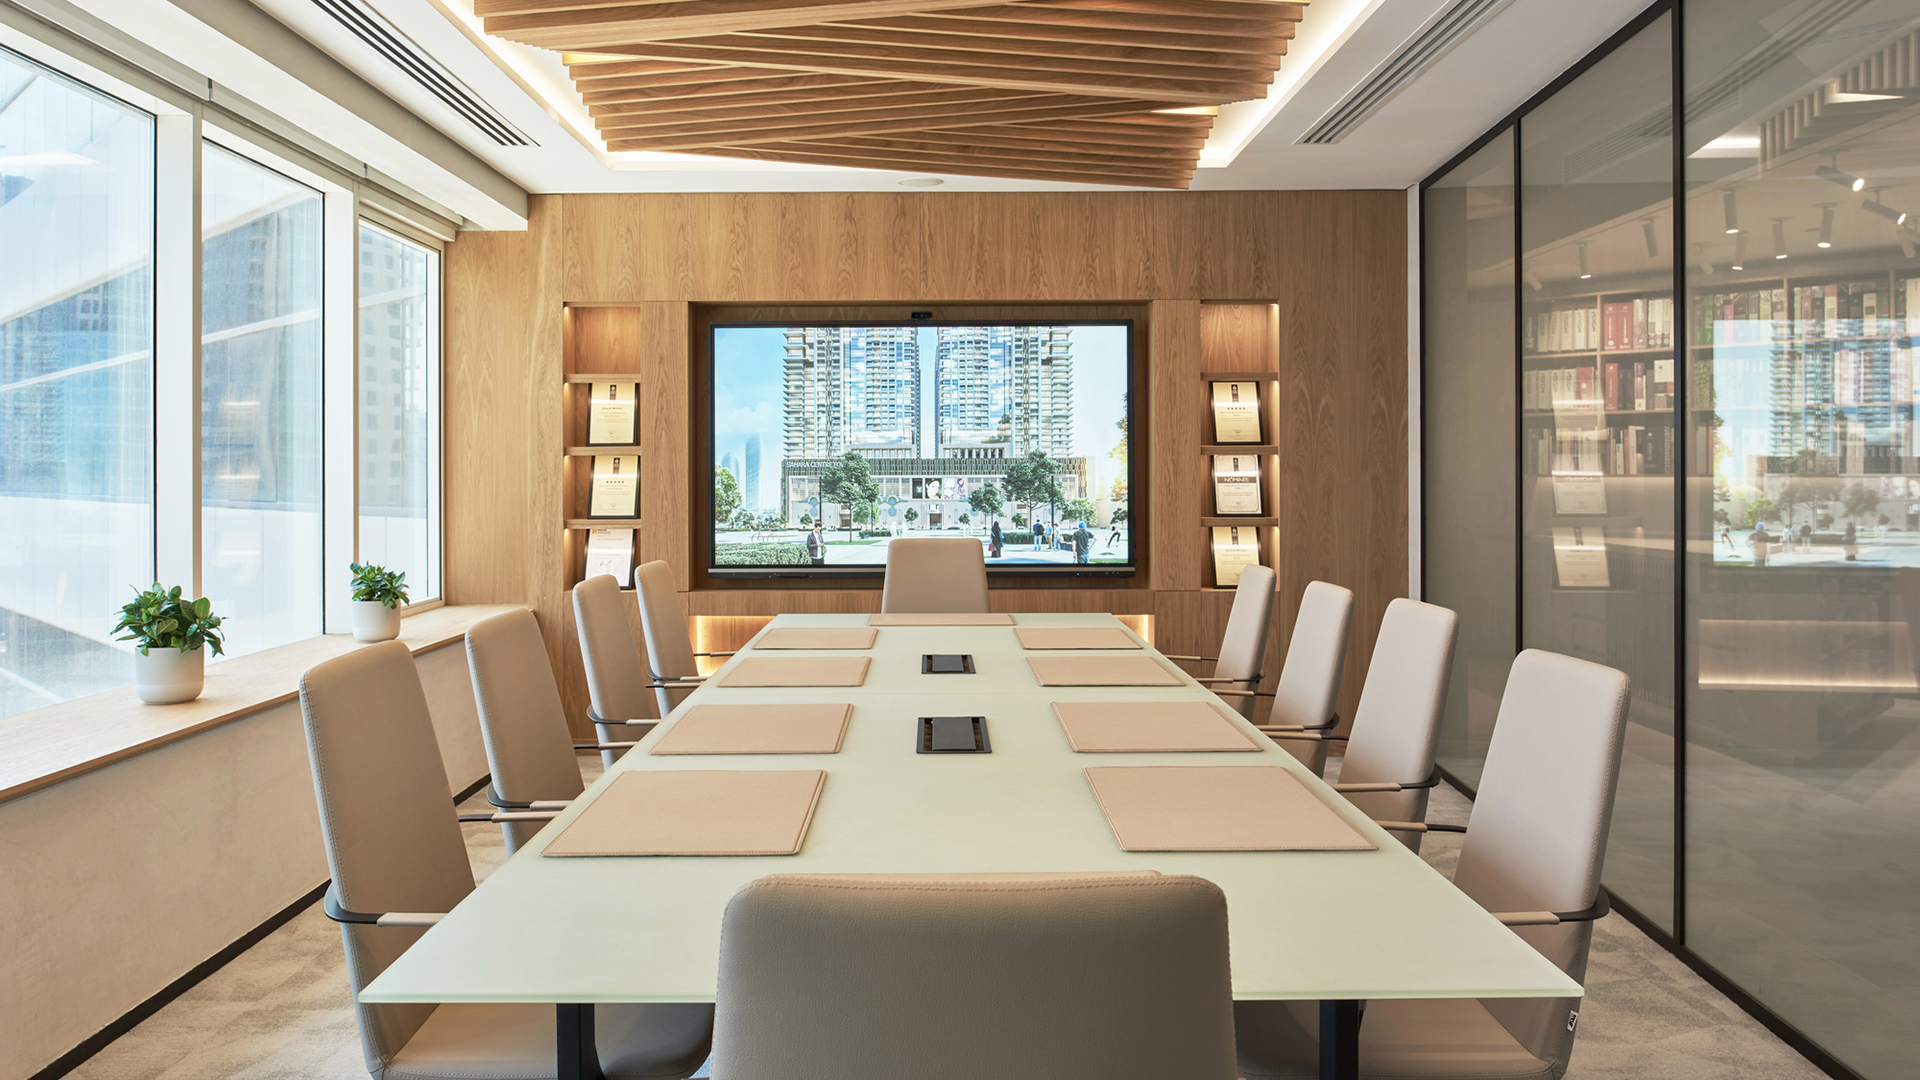 ATI Dubai office meeting room. Virtual background to use on Zoom, Microsoft Teams, Skype, Google Meet, WebEx or any other campatible app.